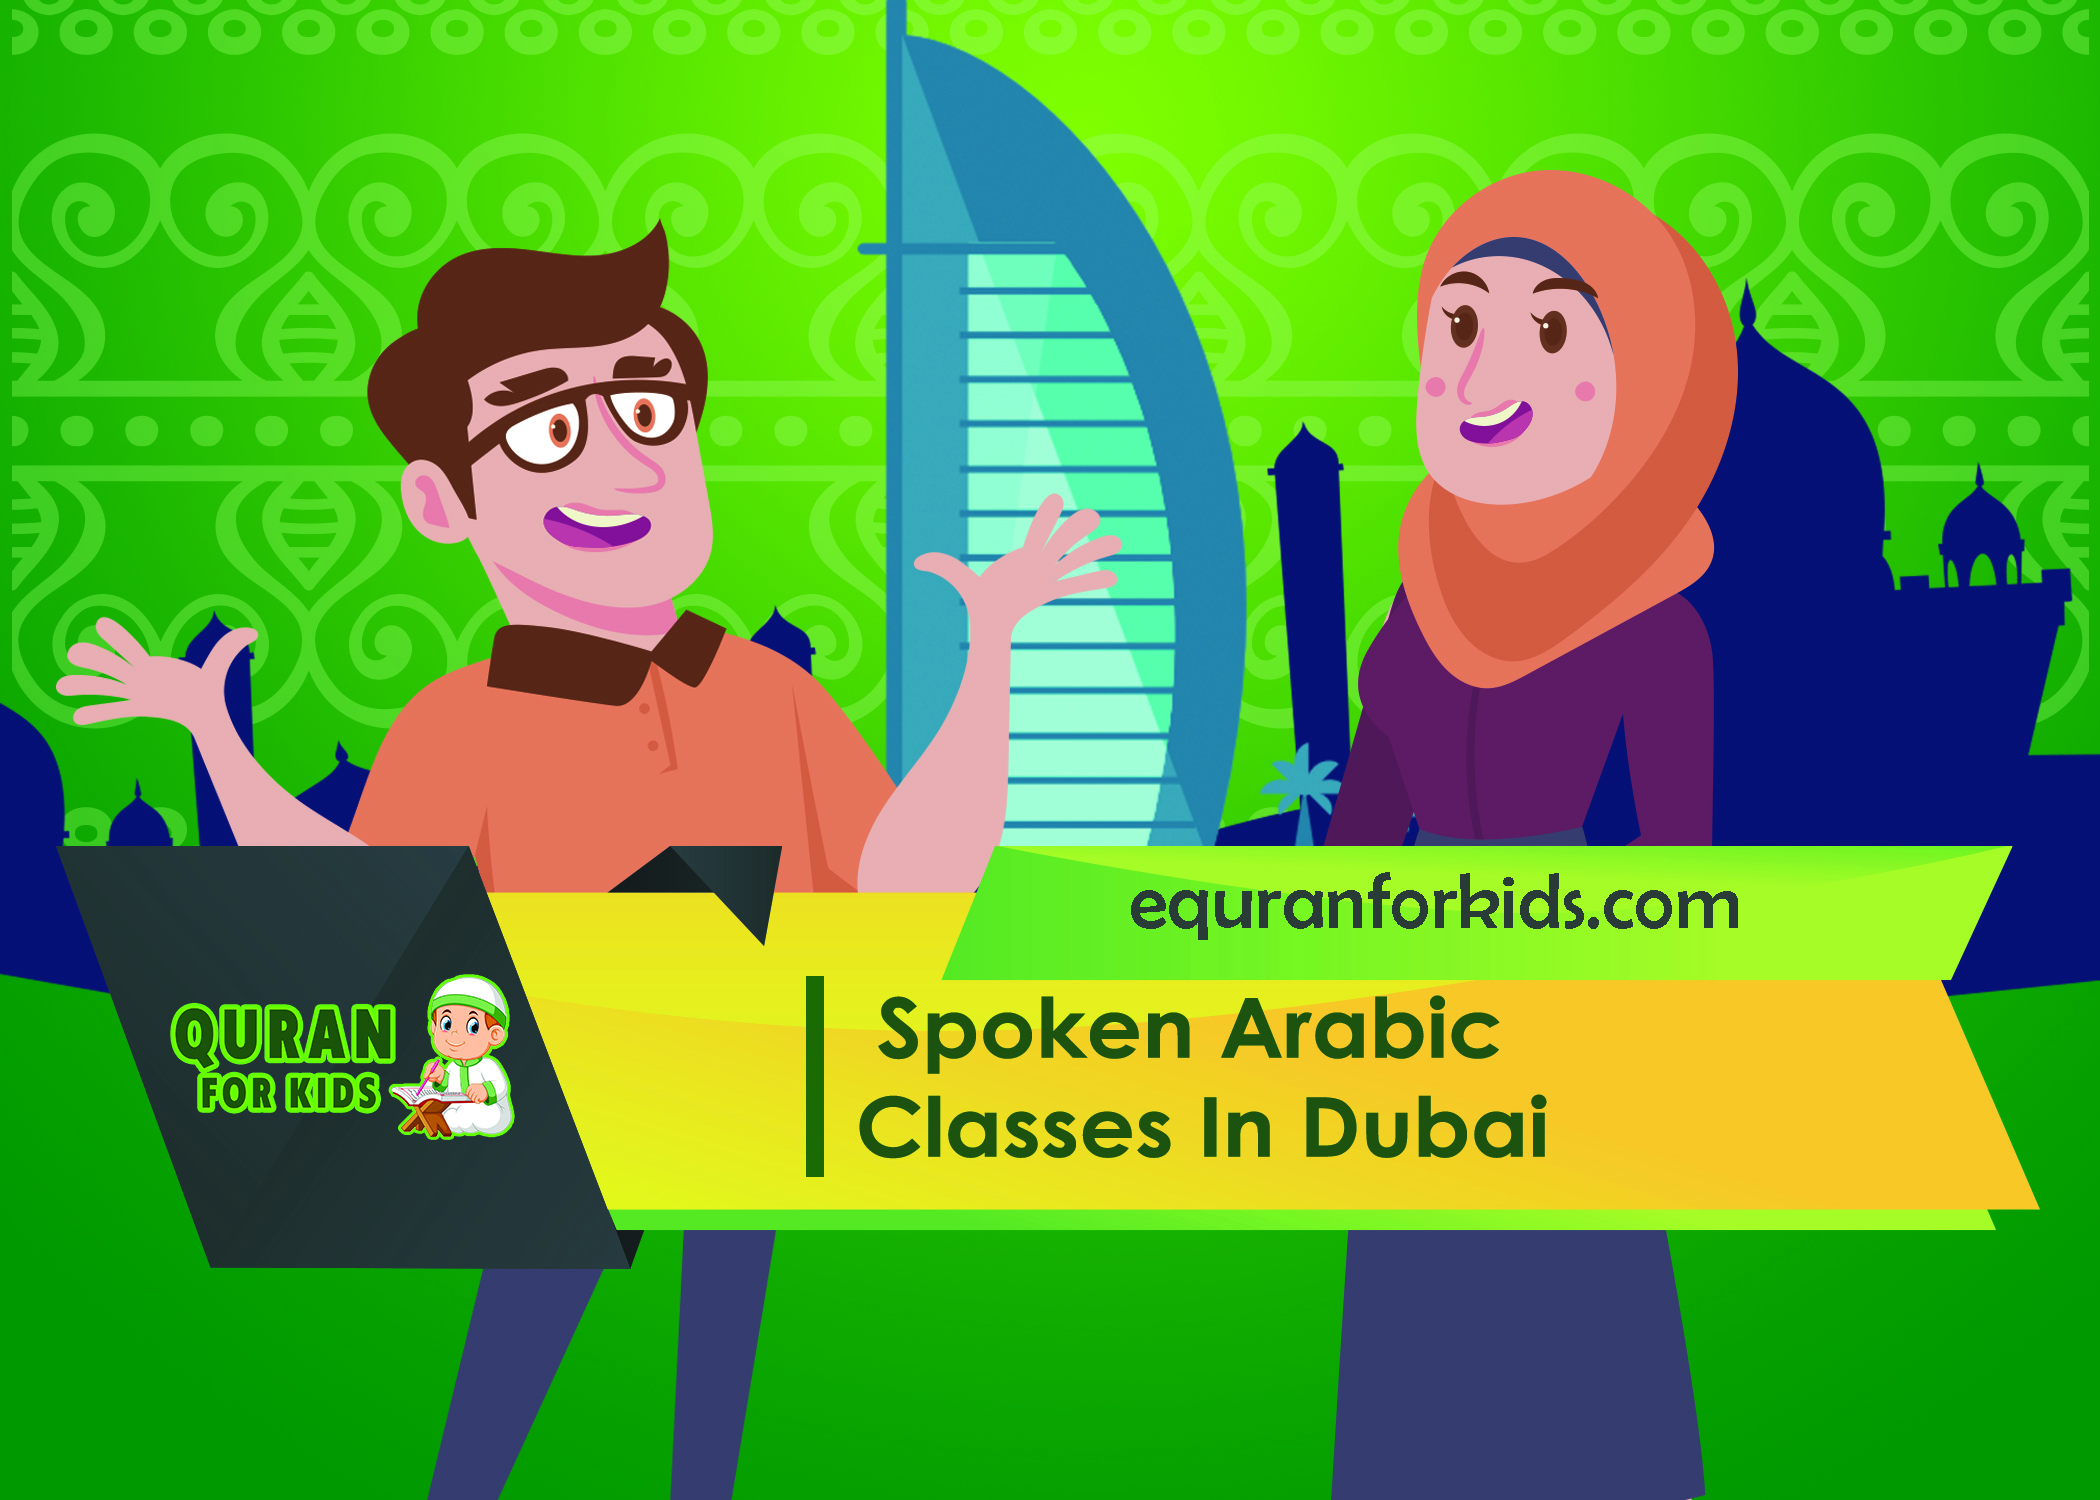 Arabic Classes in Dubai - learn quran online-quran for kids-learn